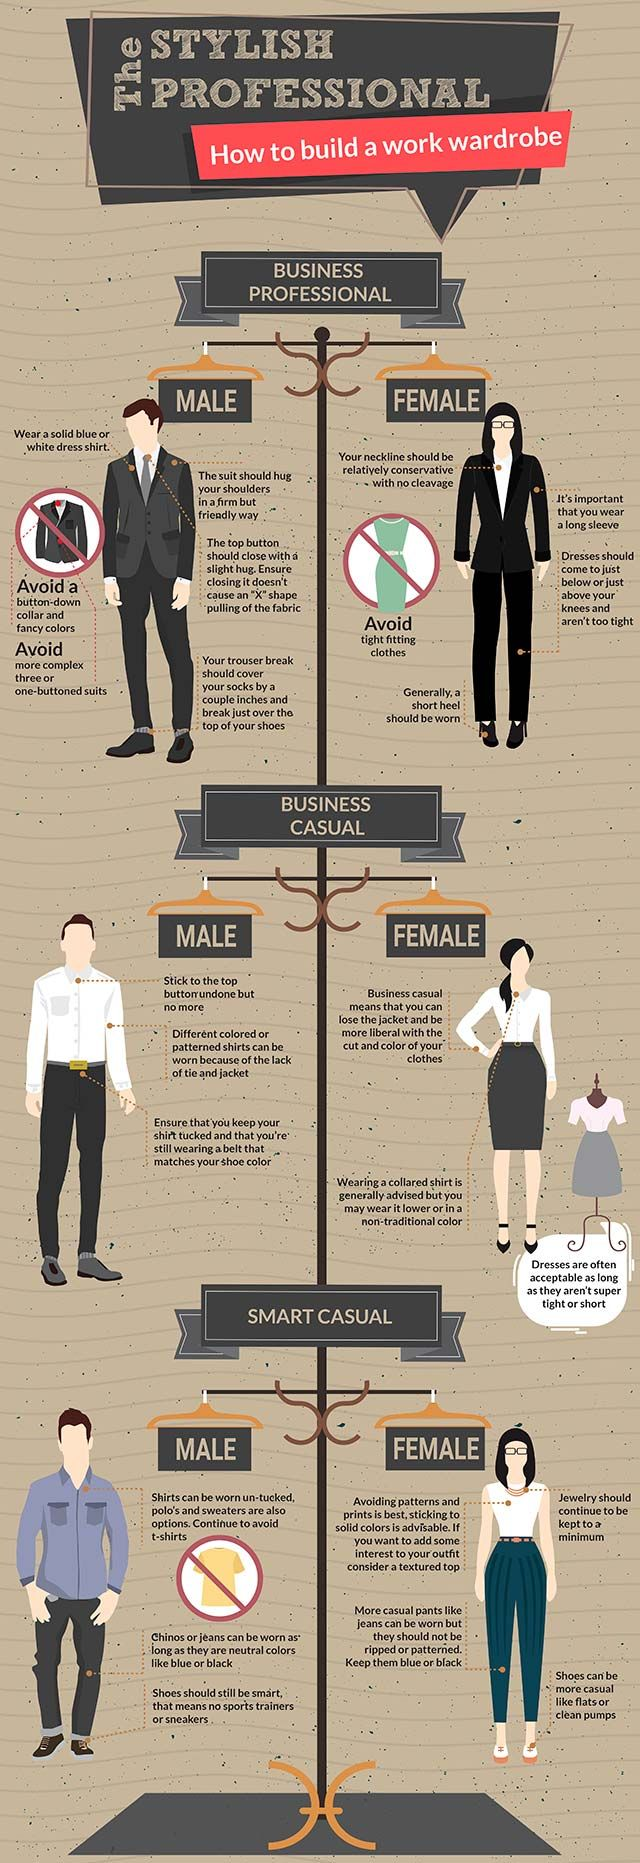 Just how casual is business casual? Do you need to wear heels? When you